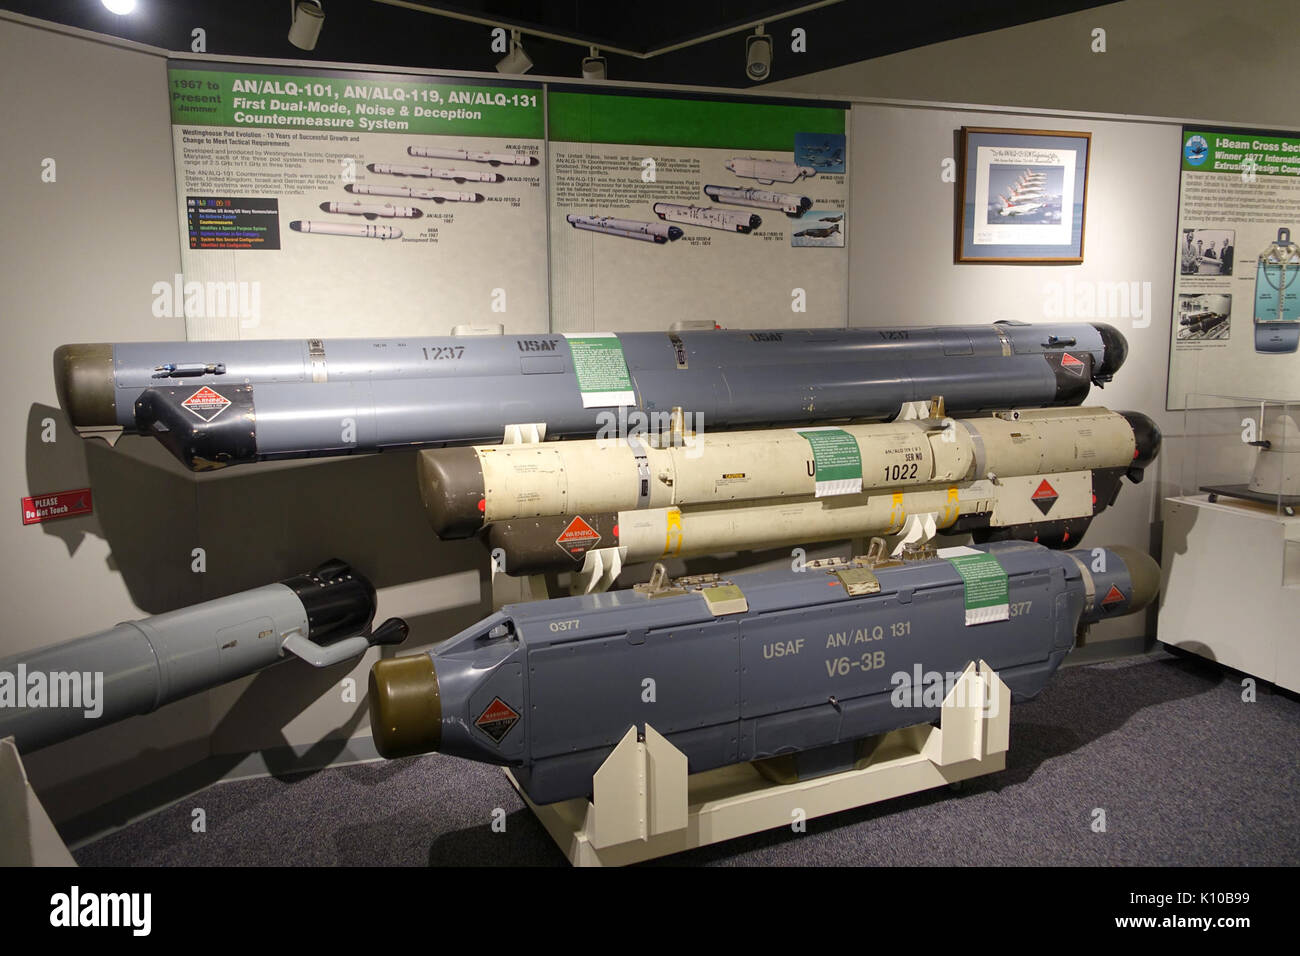 AN ALQ 101, AN ALQ 119, and AN ALQ 131 dual mode, noise and deception countermeasure systems   National Electronics Museum   DSC00454 - Stock Image